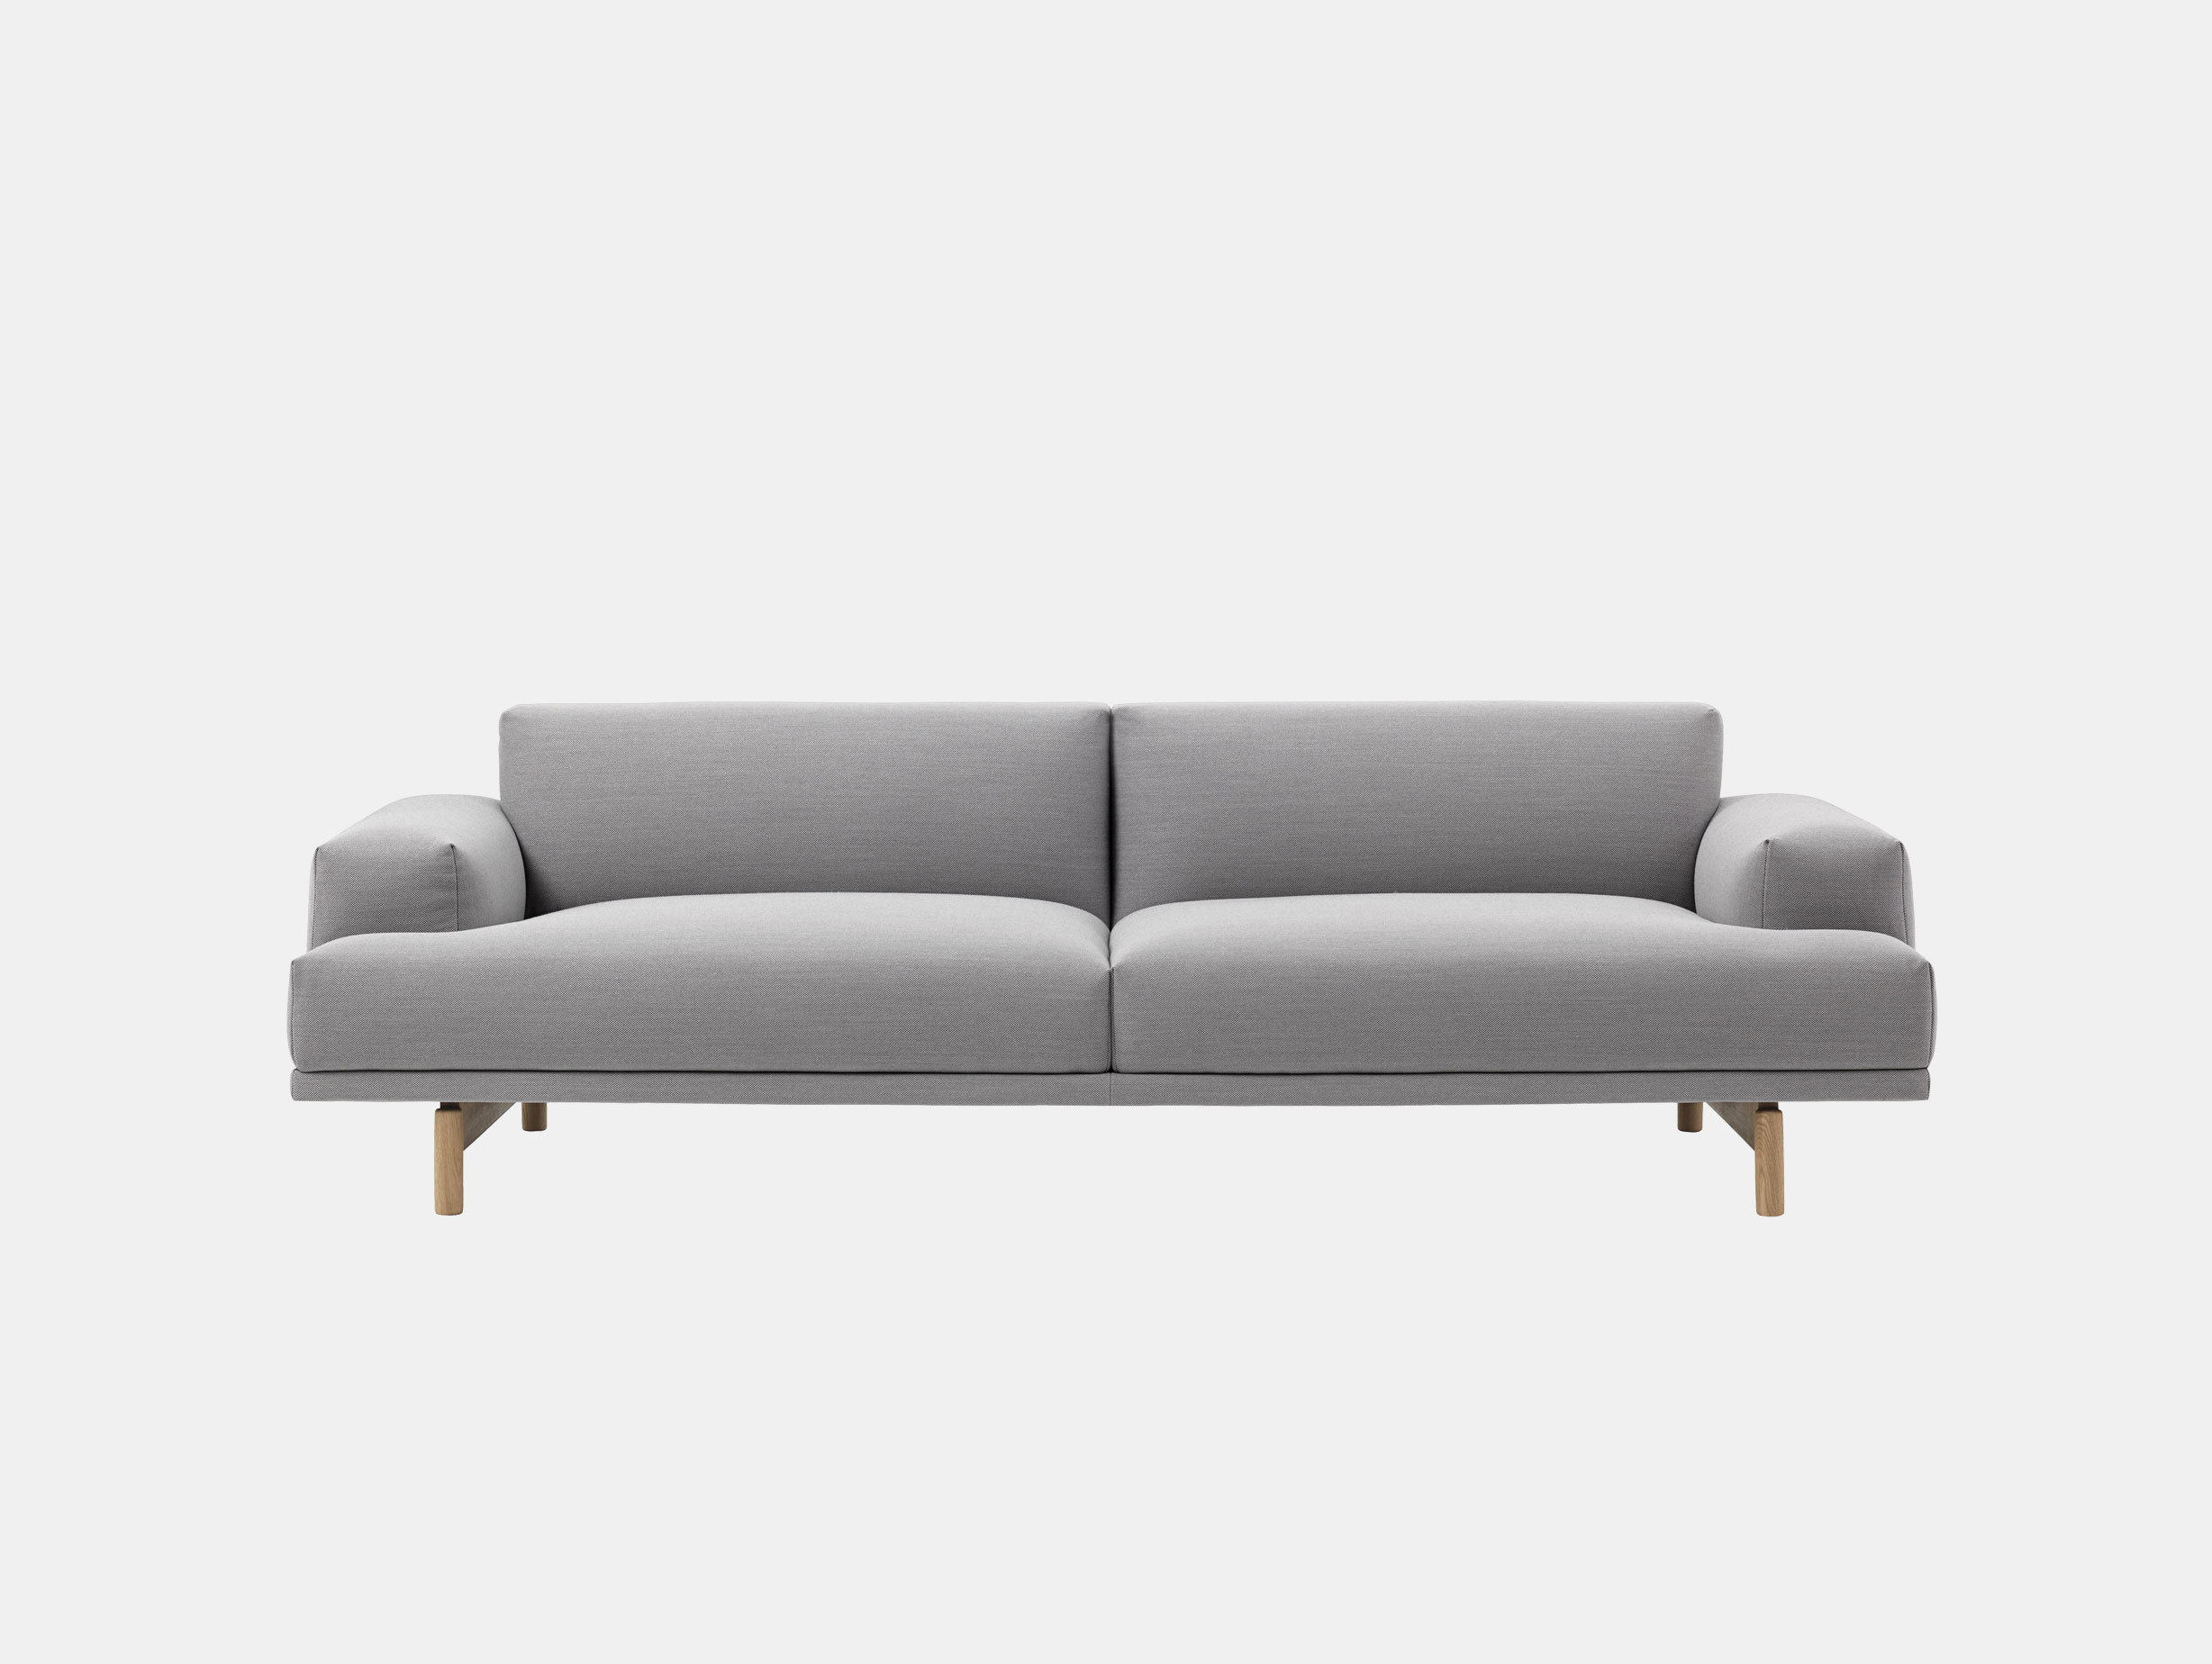 Compose Sofa image 2